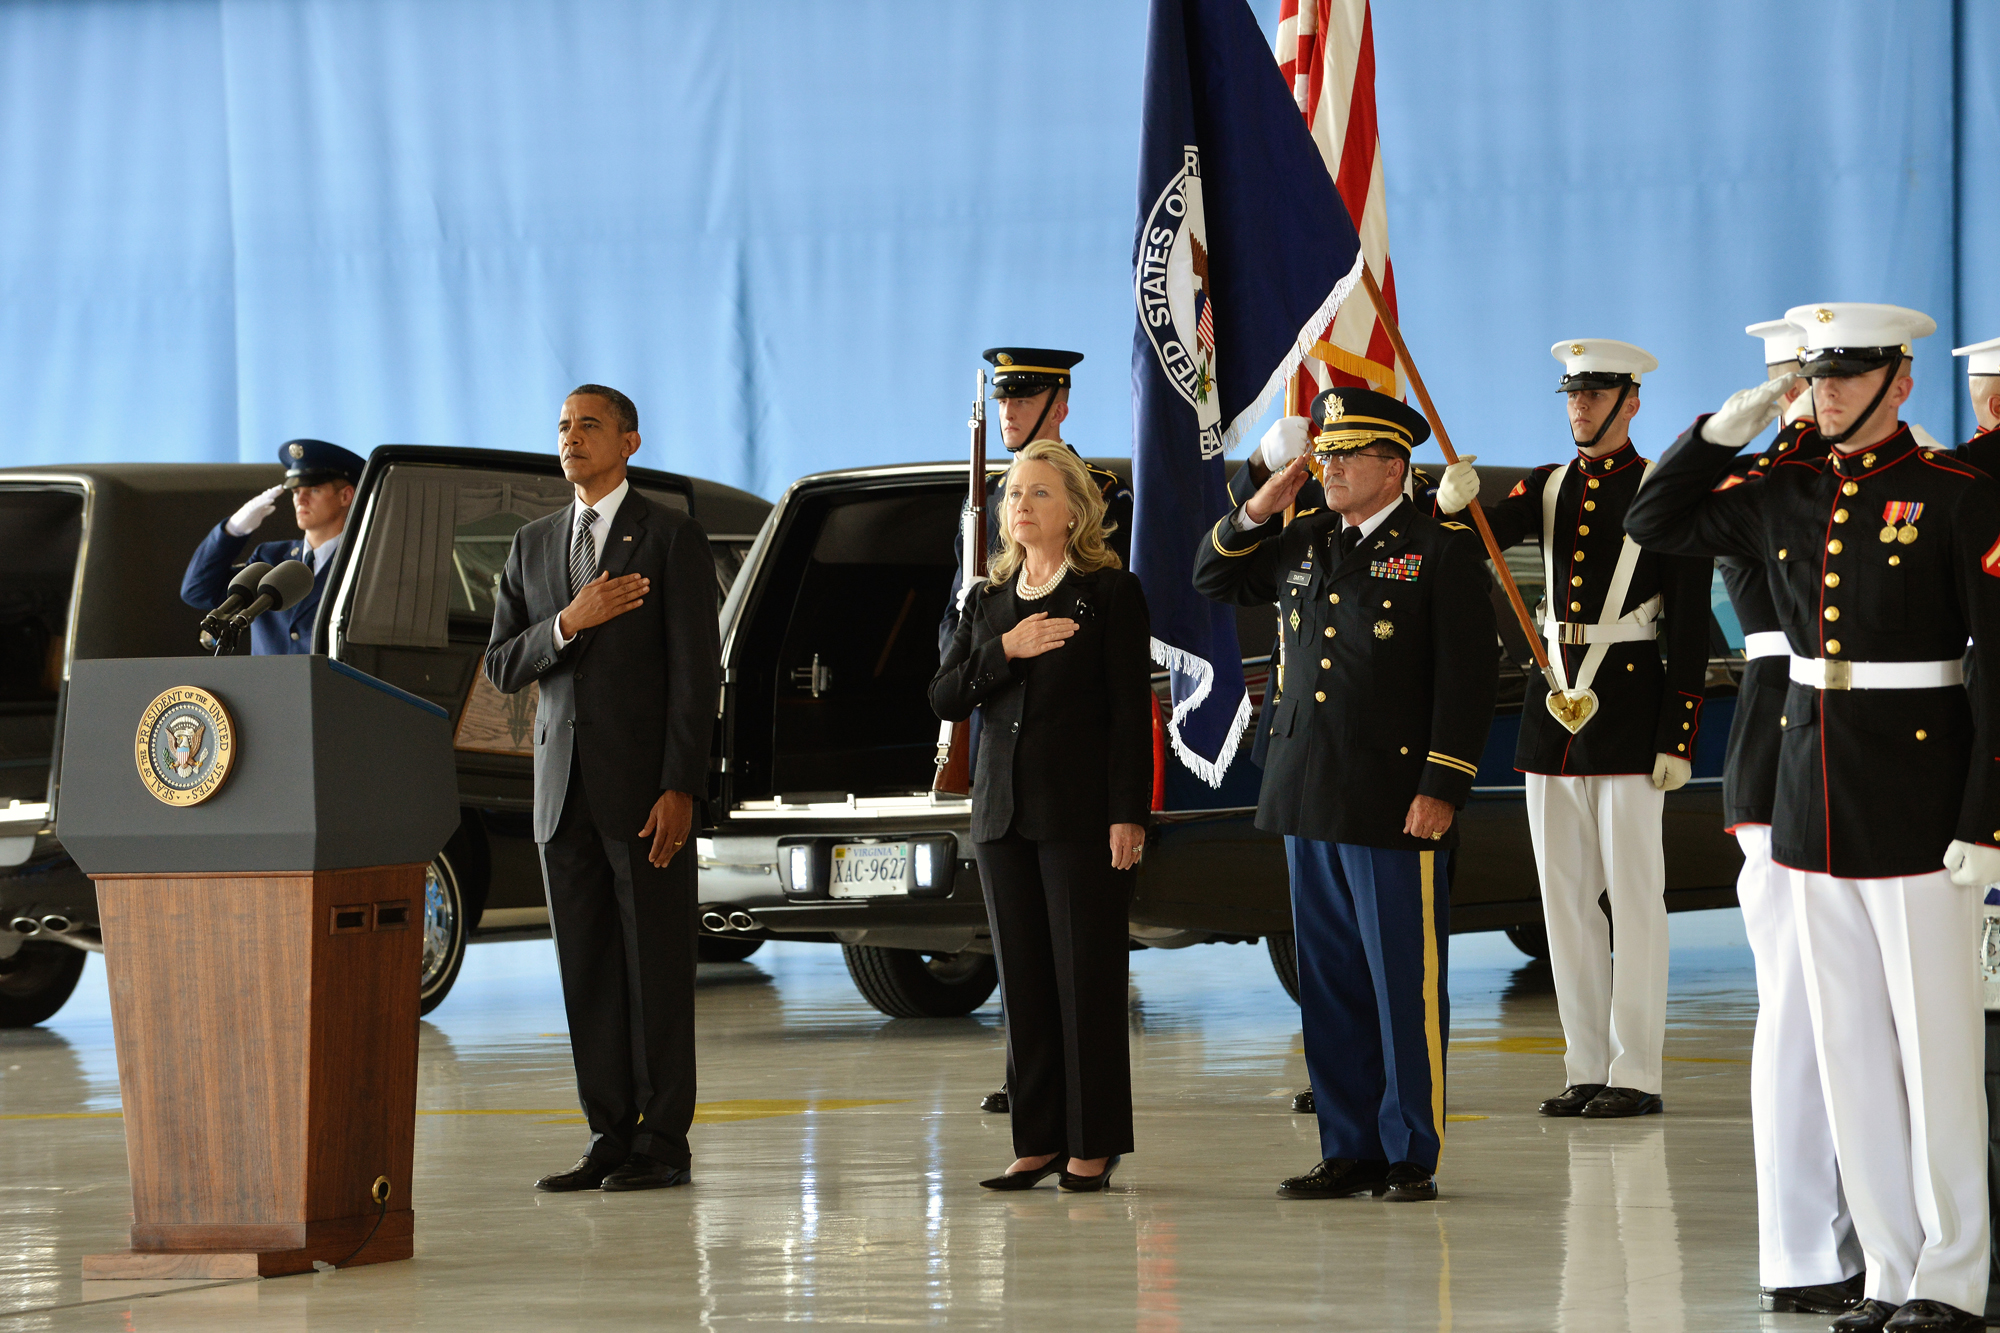 President Obama and Secretary Clinton honor the Benghazi attack victims at the Transfer of Remains Ceremony held at Andrews Air Force Base on September 14, 2012.